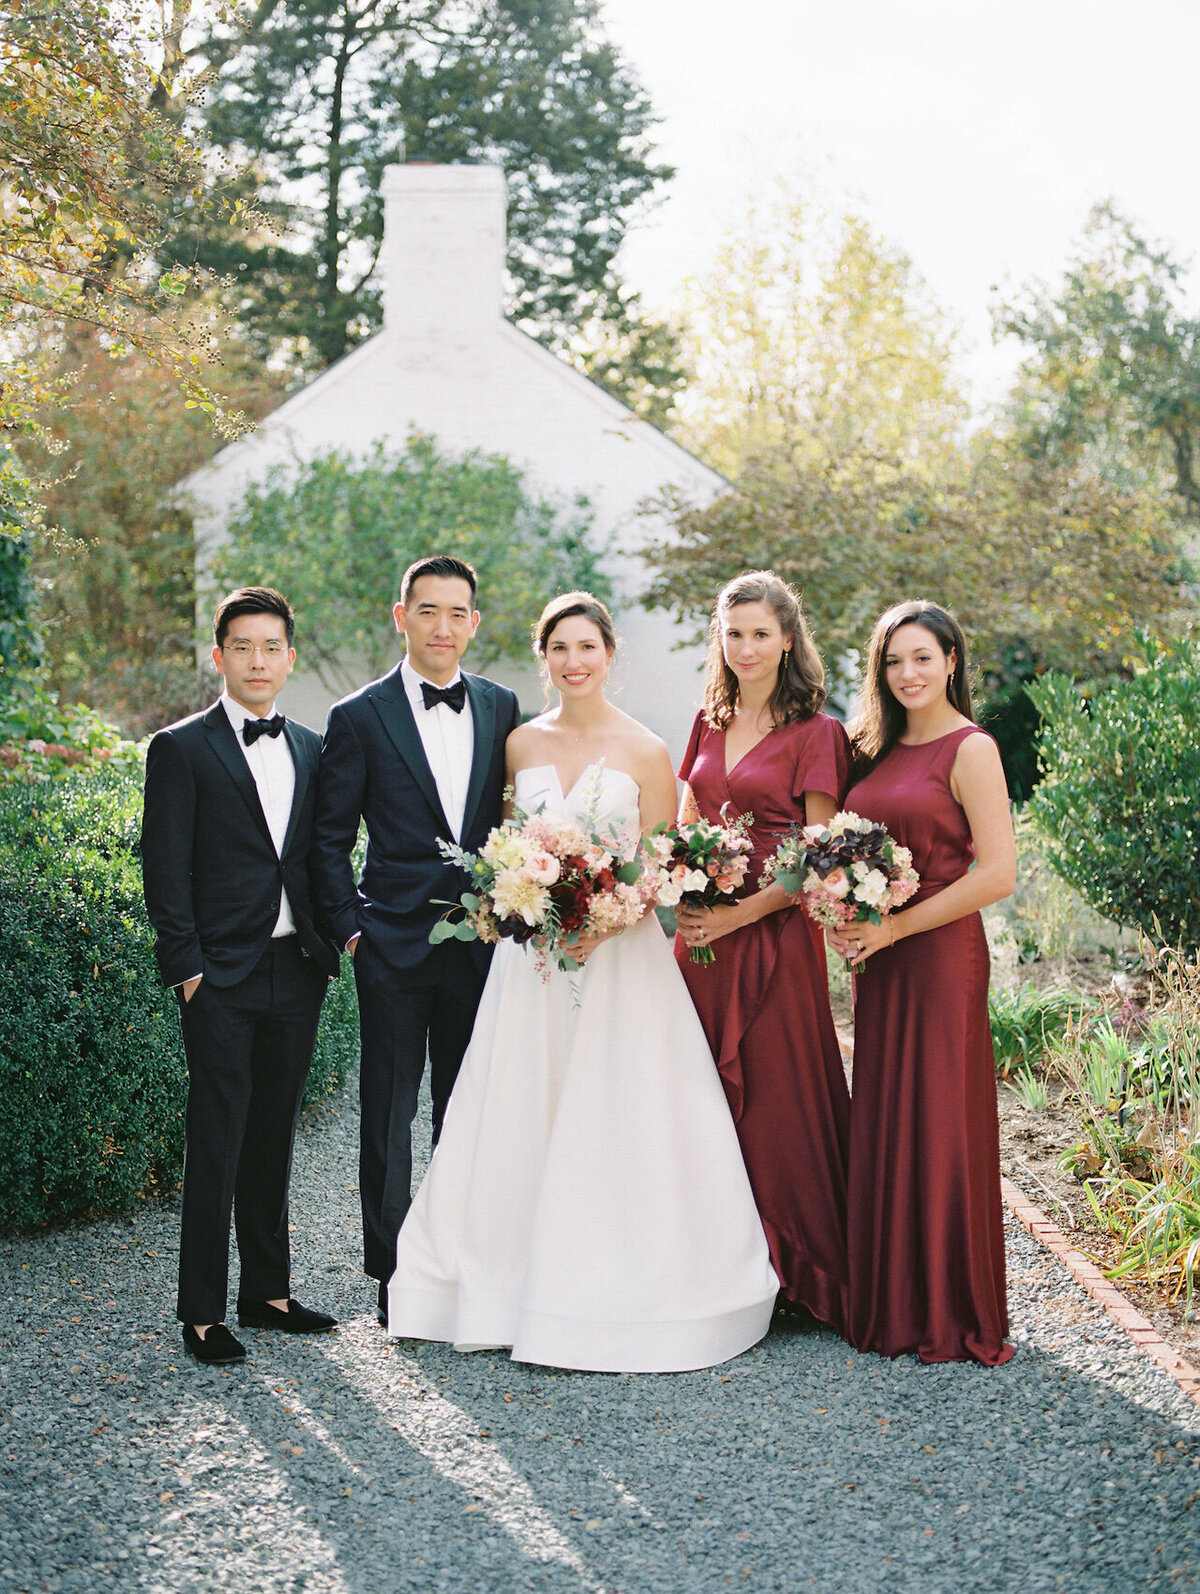 Bridal Party Photos Red Bridesmaids Dresses Robert Aveau for © Bonnie Sen Photography